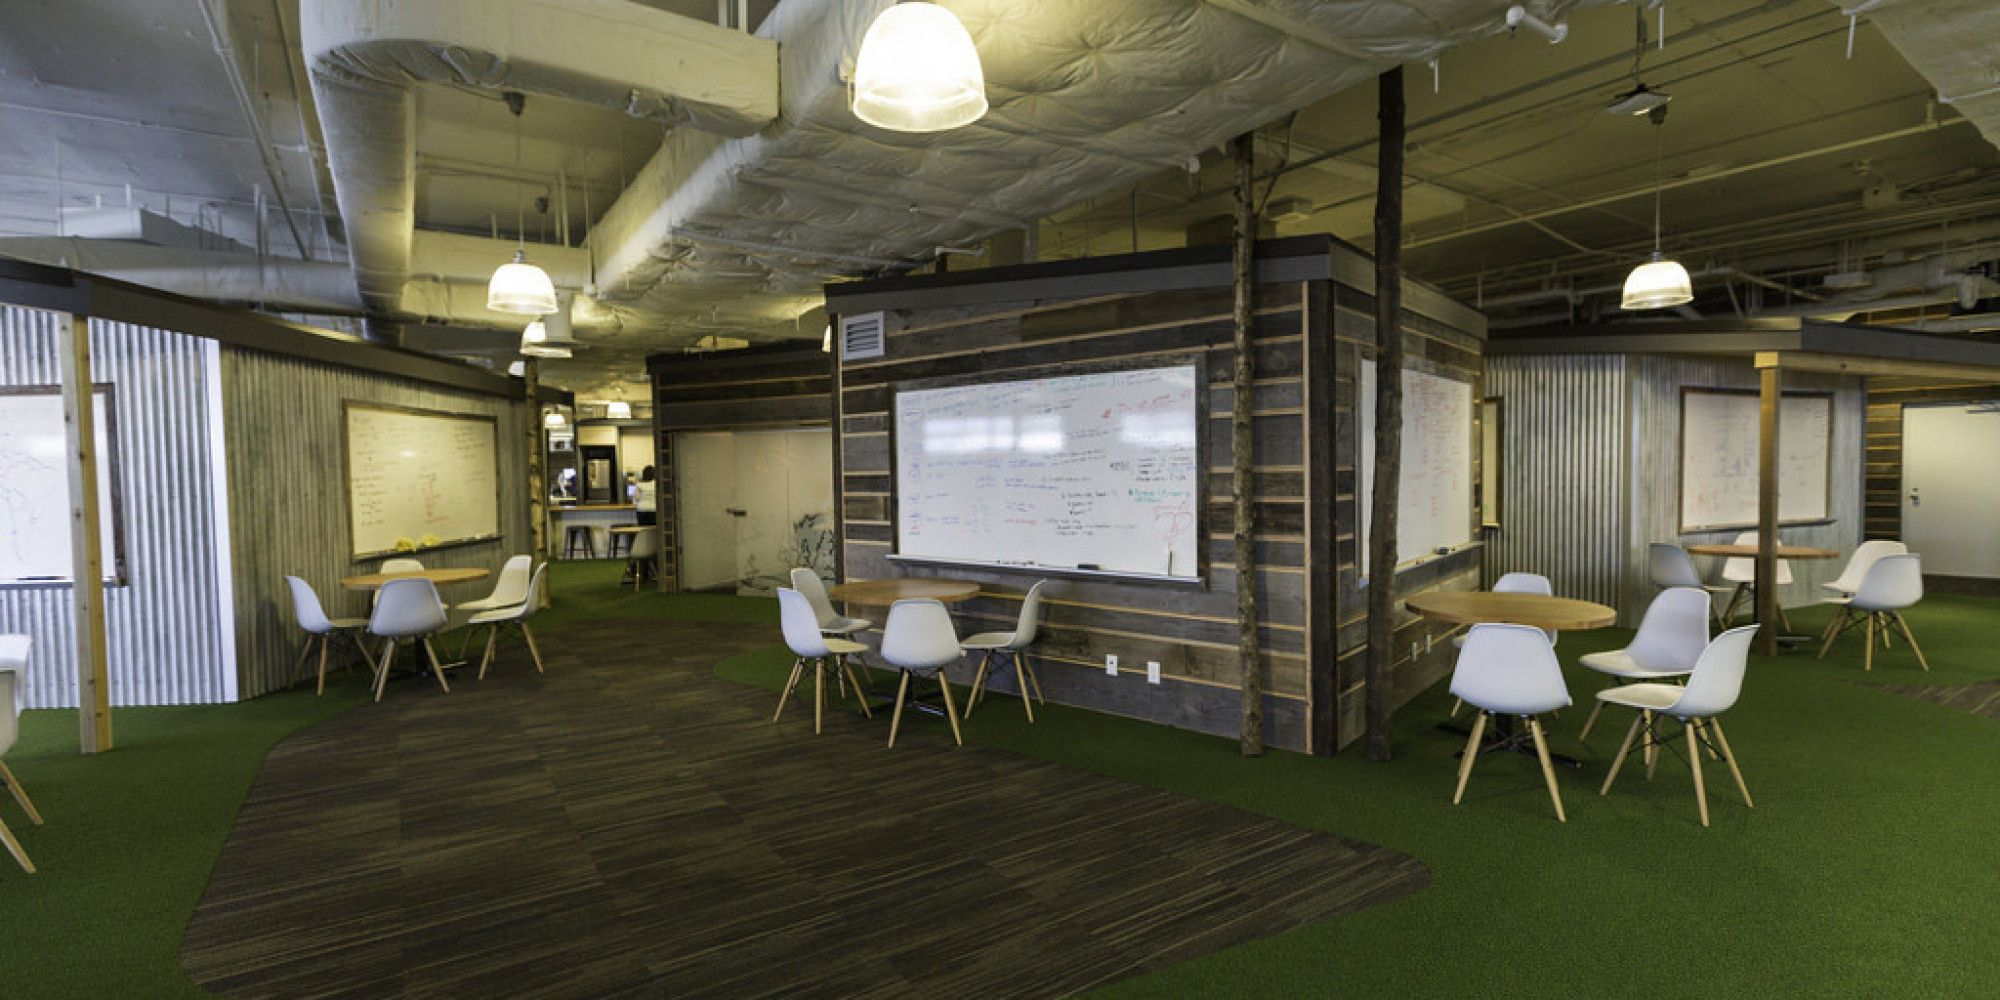 vancouver office space meeting rooms. Beautiful Rooms Check Out Our NEW 2nd Office In Vancouver Ski Lodge Fire Pit Andan  Outhouse Sneak Peak Into Hootsuitelife With Vancouver Office Space Meeting Rooms F